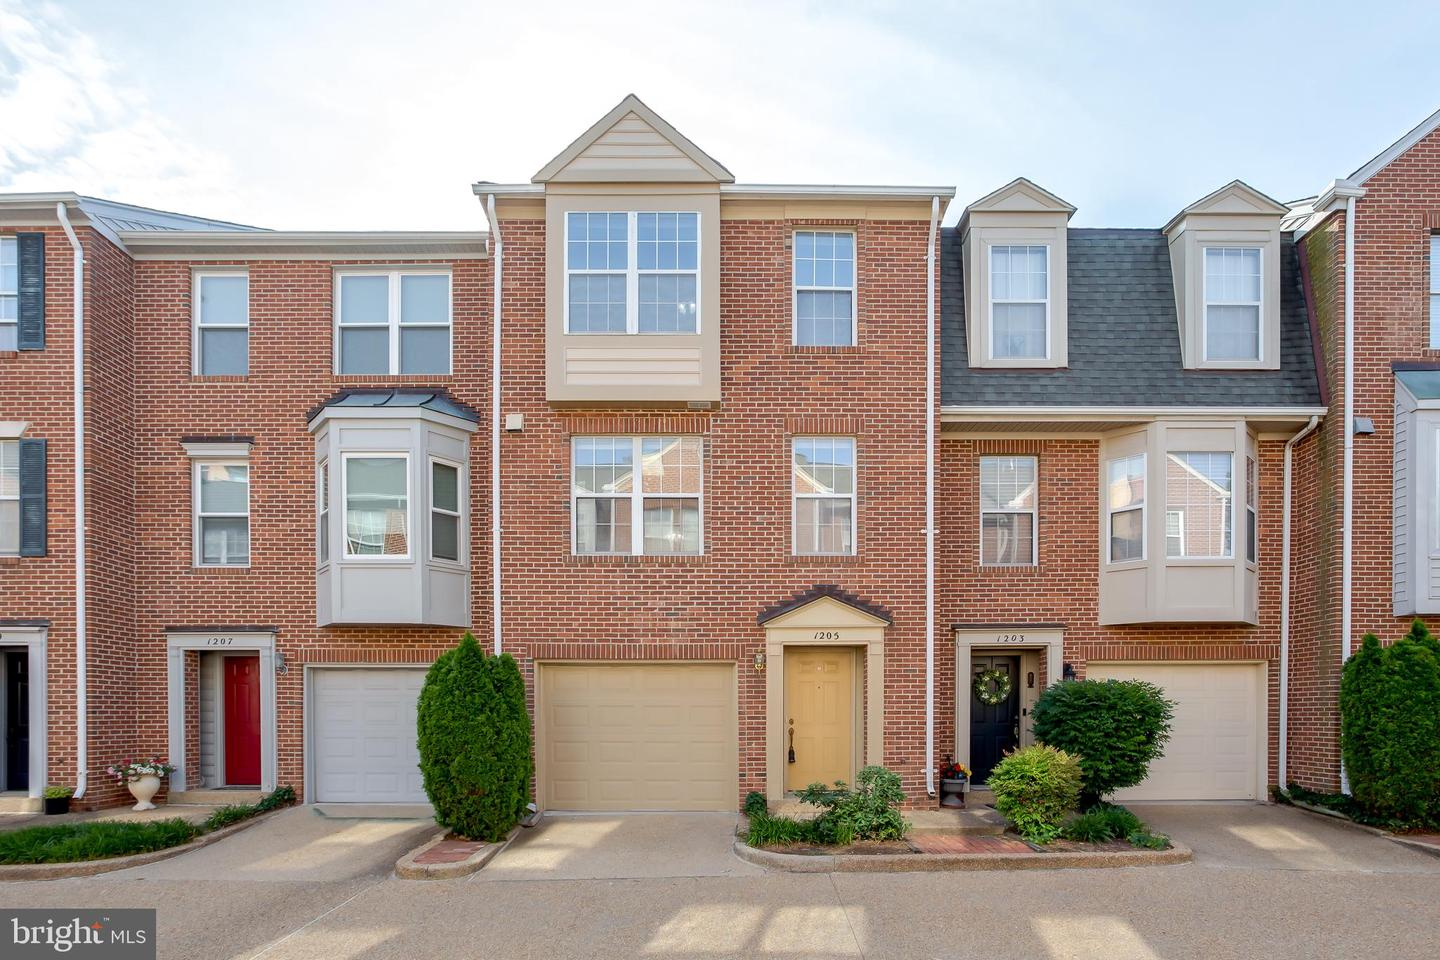 Other Residential for Rent at 1205 Madison St Alexandria, Virginia 22314 United States